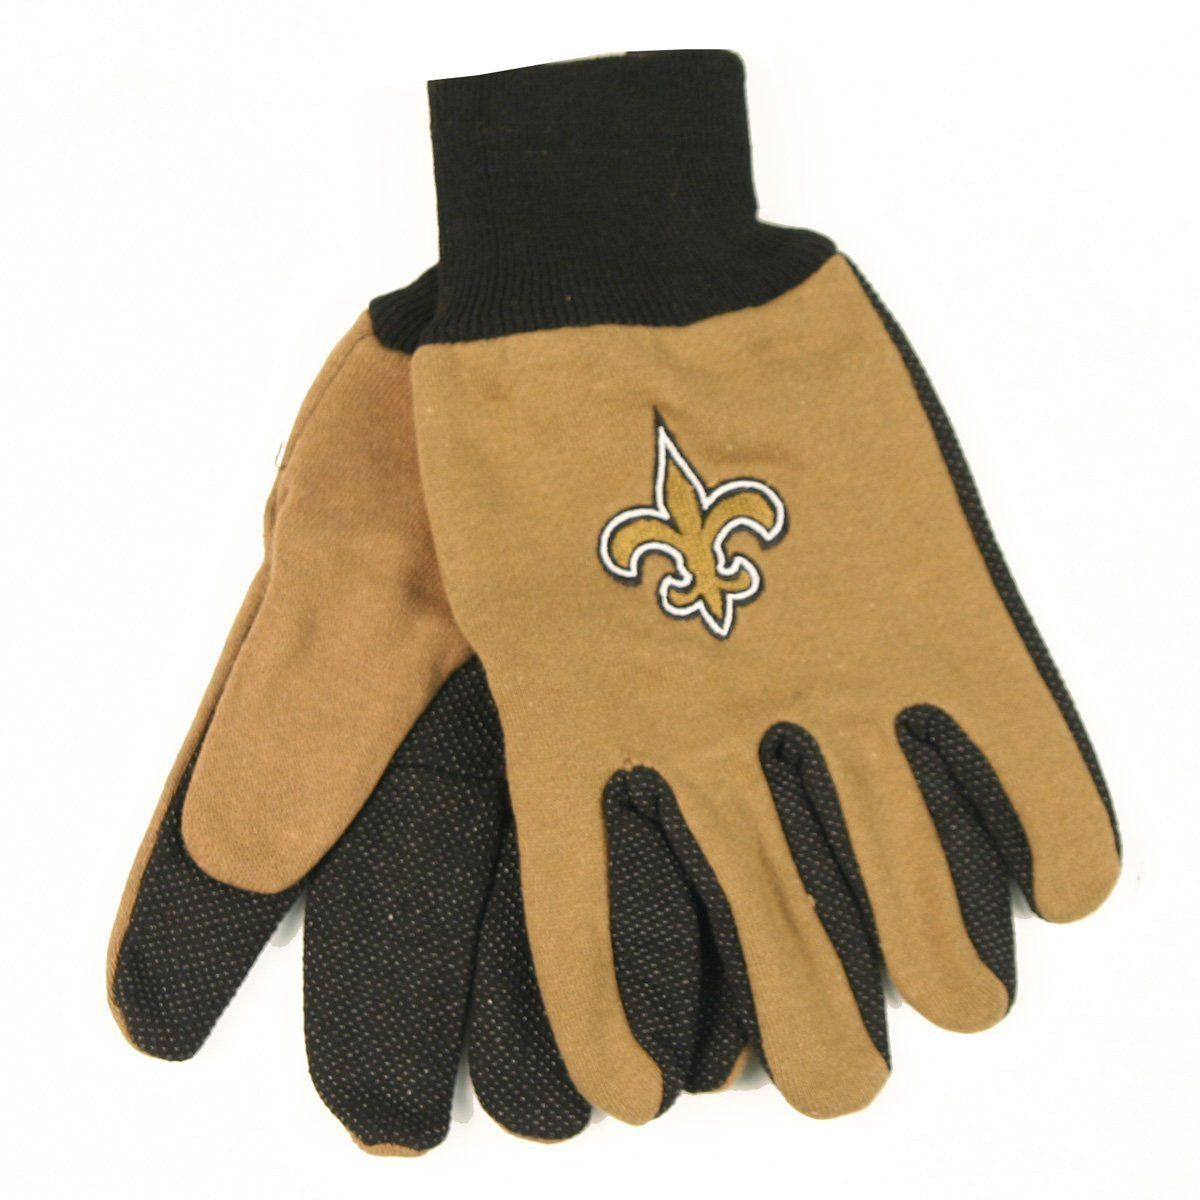 NEW ORLEANS SAINTS TEAM TAILGATE GAME DAY PARTY UTILITY WORK GLOVES NFL FOOTBALL